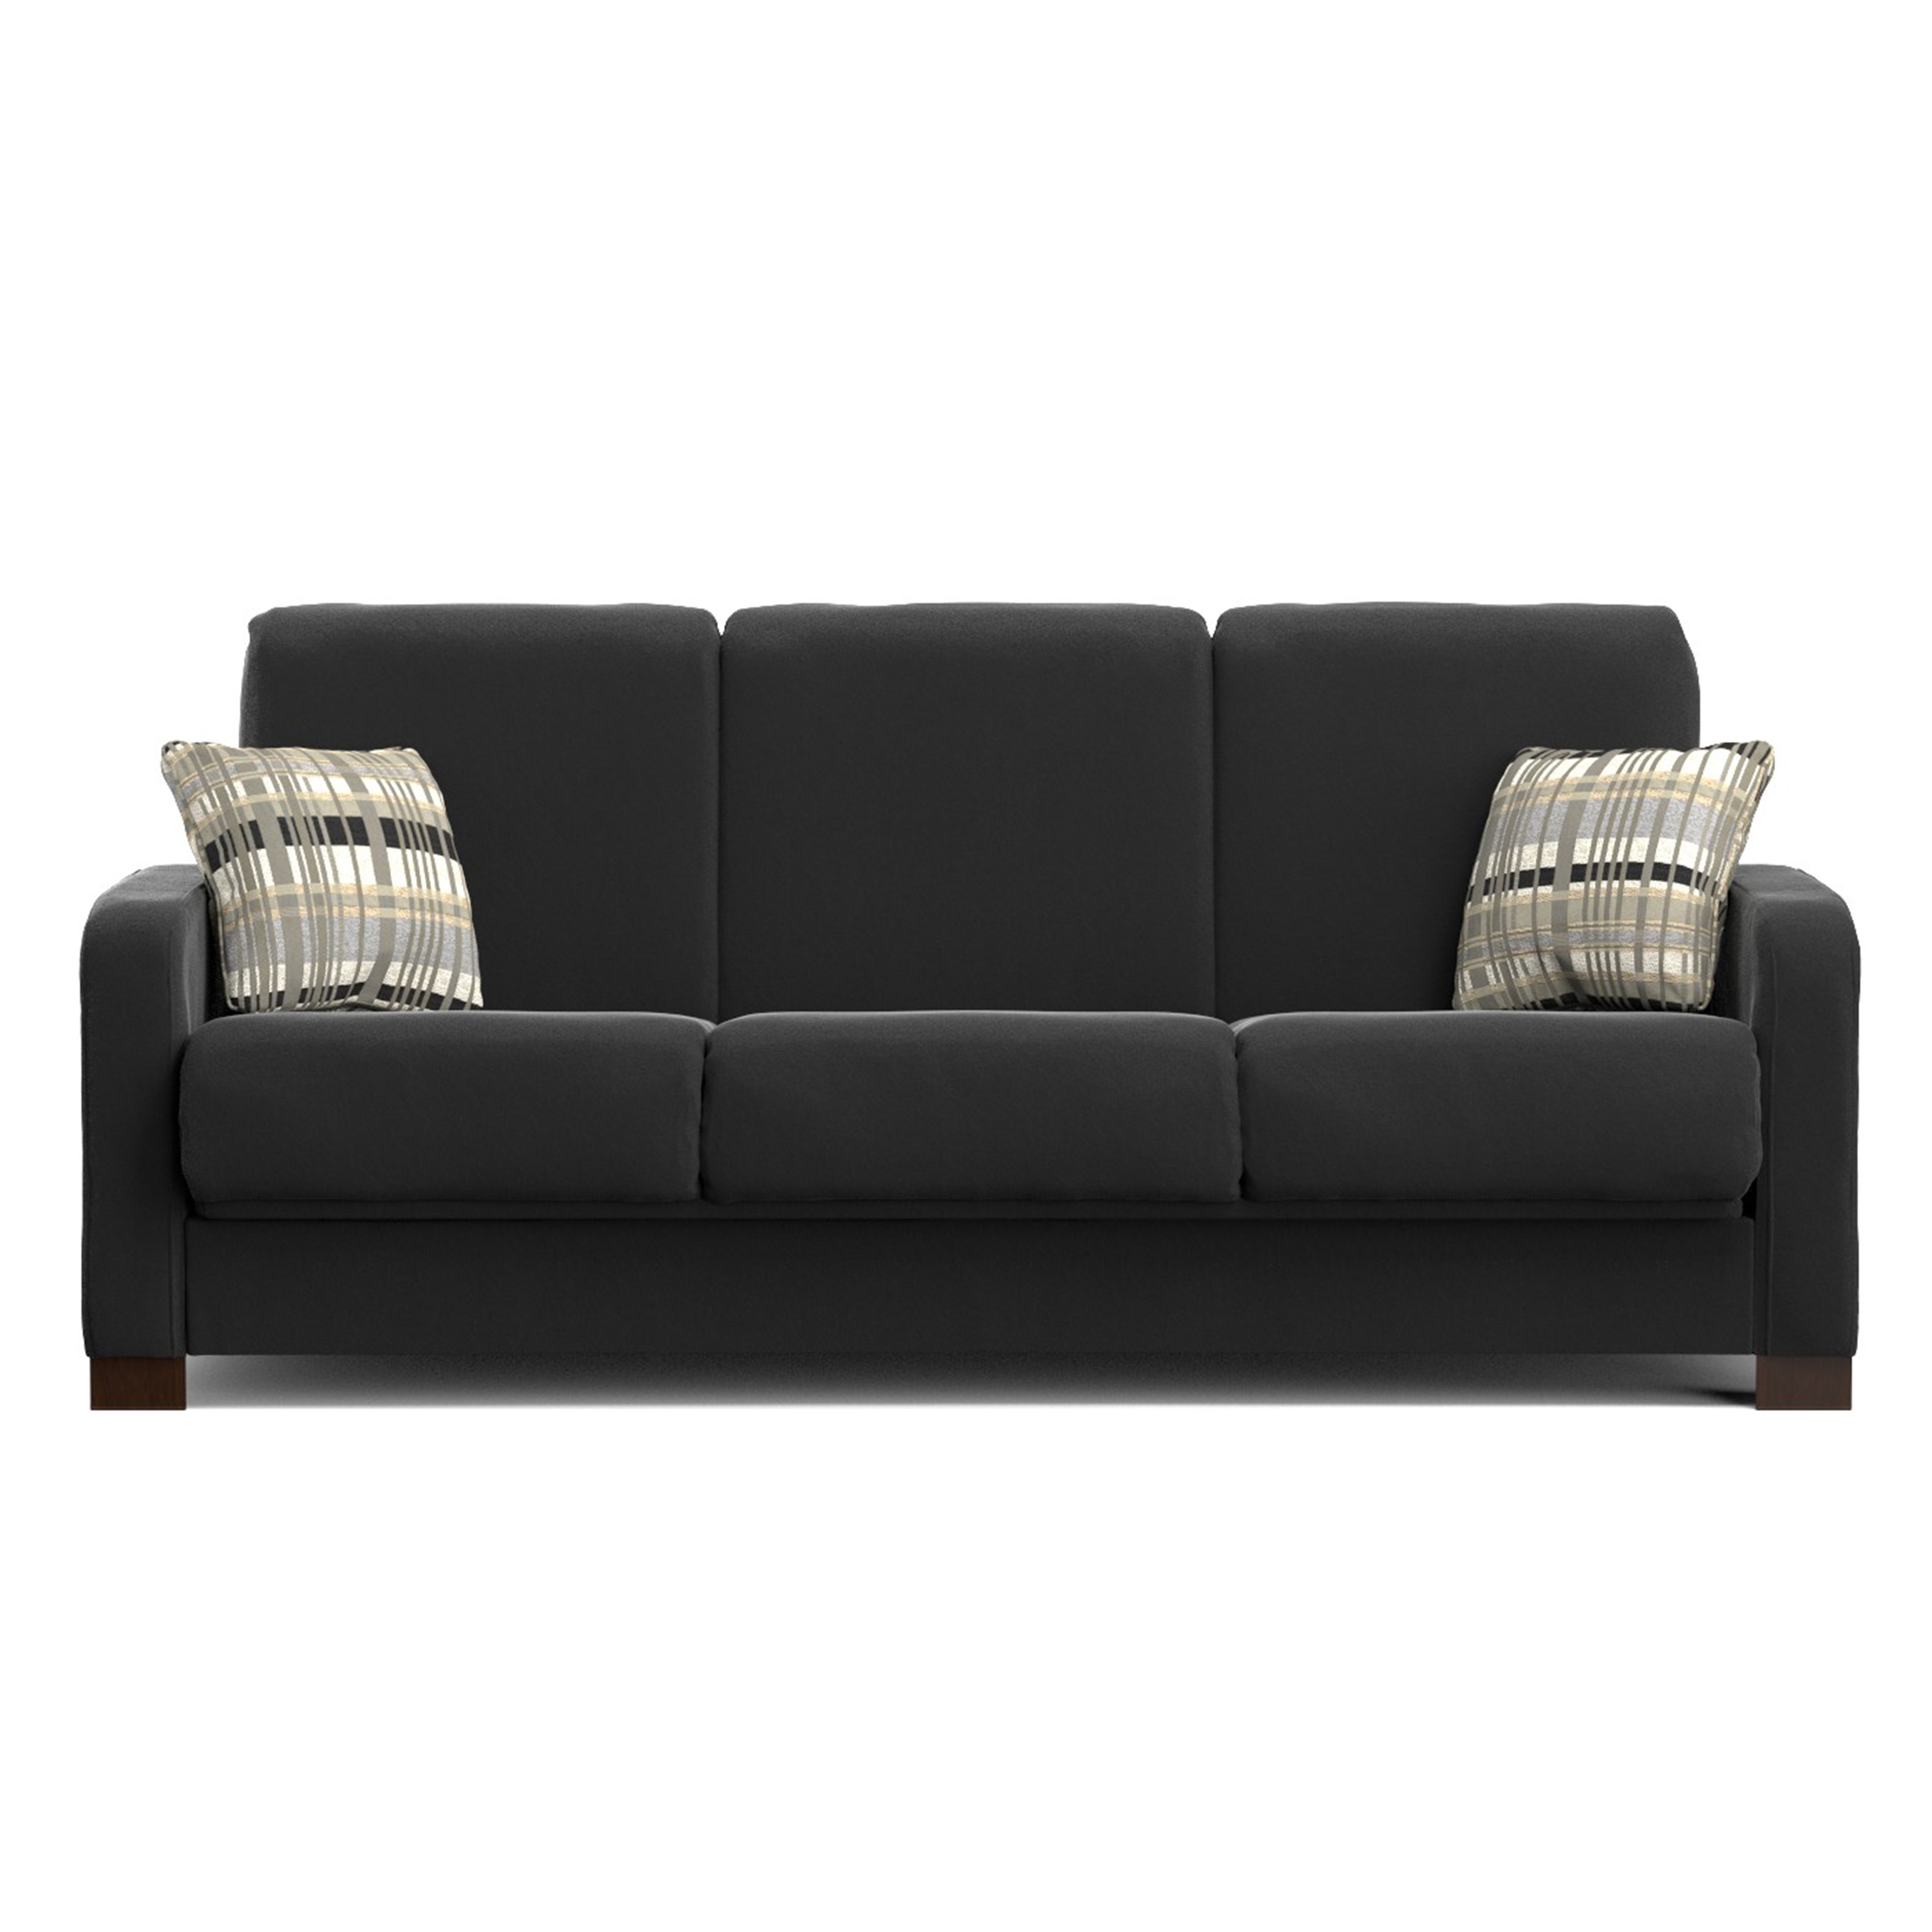 Handy Living Trace Convert A Couch Black Microfiber Futon Sofa Sleeper On Free Shipping Today 10333255